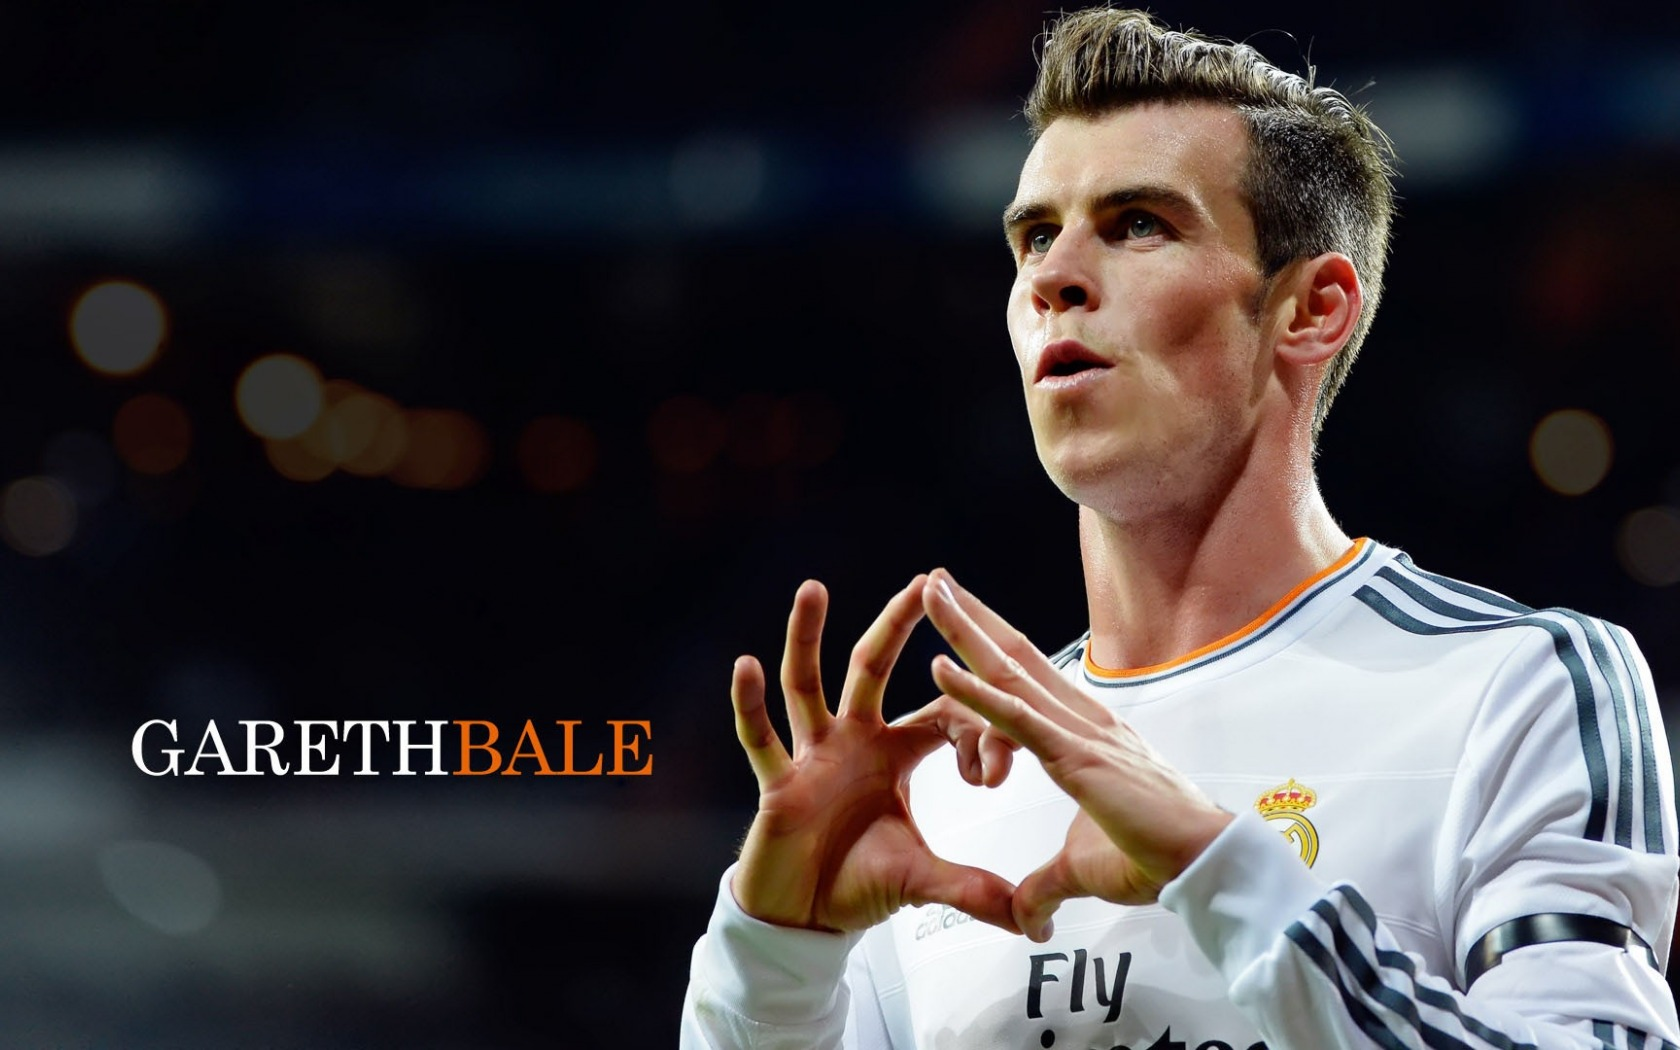 hinh nen cau lac bo real madrid